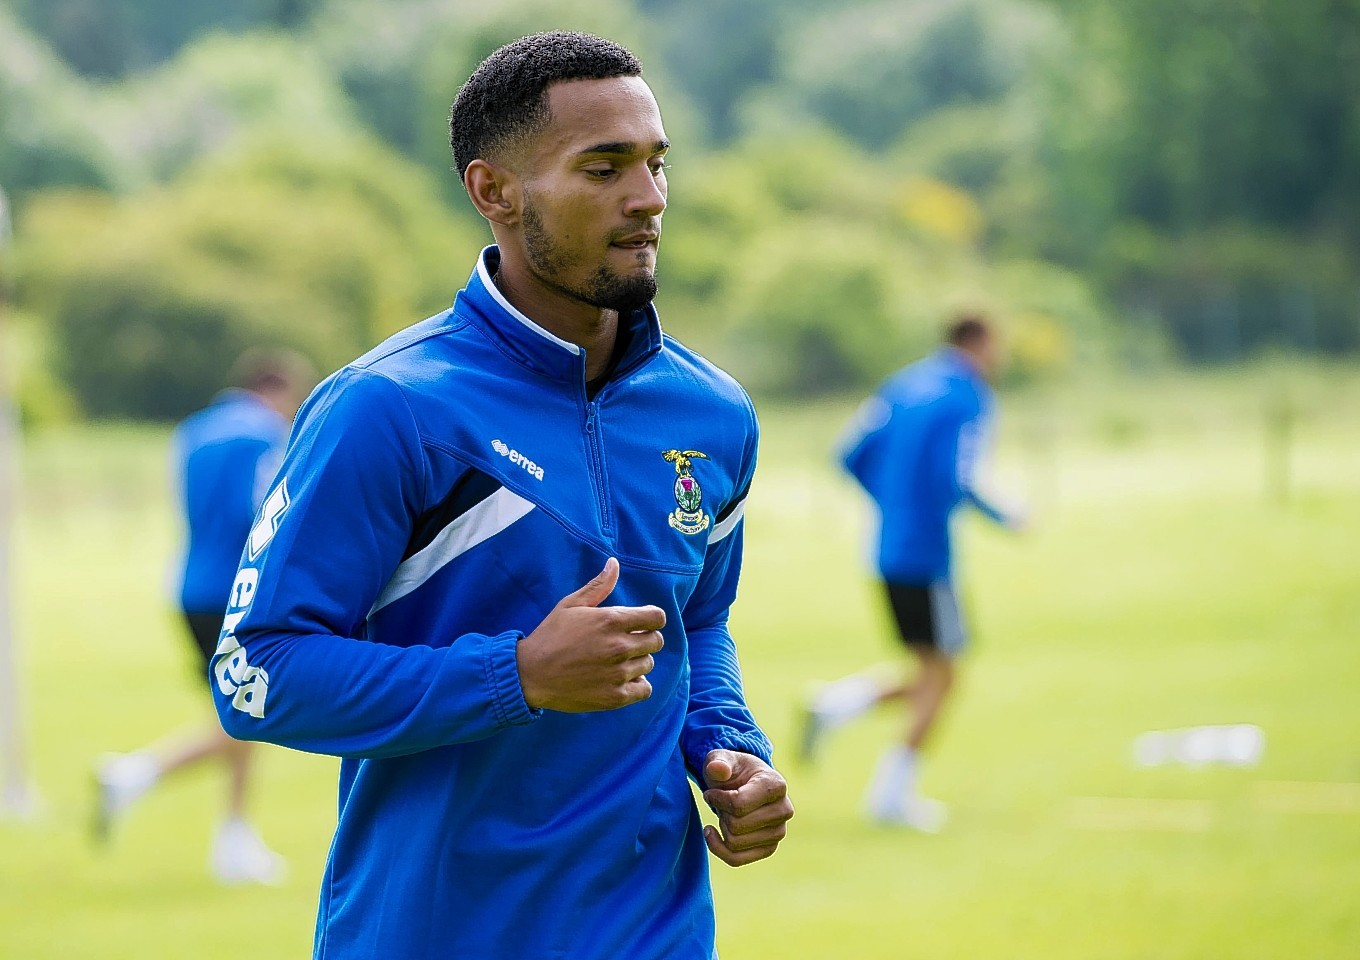 Forward Jordan Roberts is determined to play in Caley Thistle's Europa League tie against FC Astra.